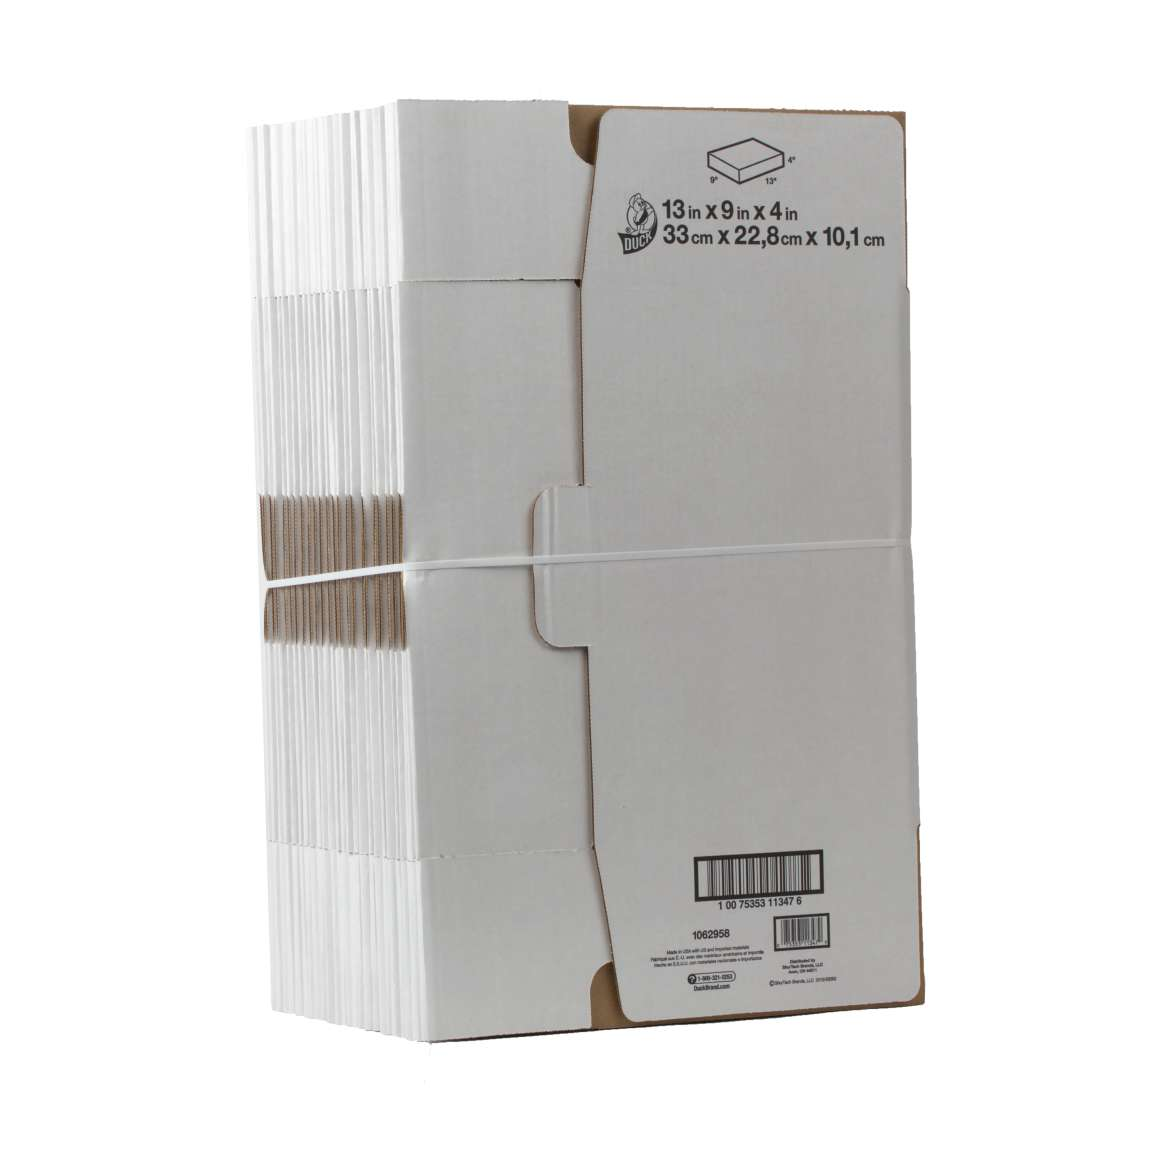 Duck® Brand Self-Locking Mailing Box - White, 25 pk, 13 in. x 9 in. x 4 in. Image